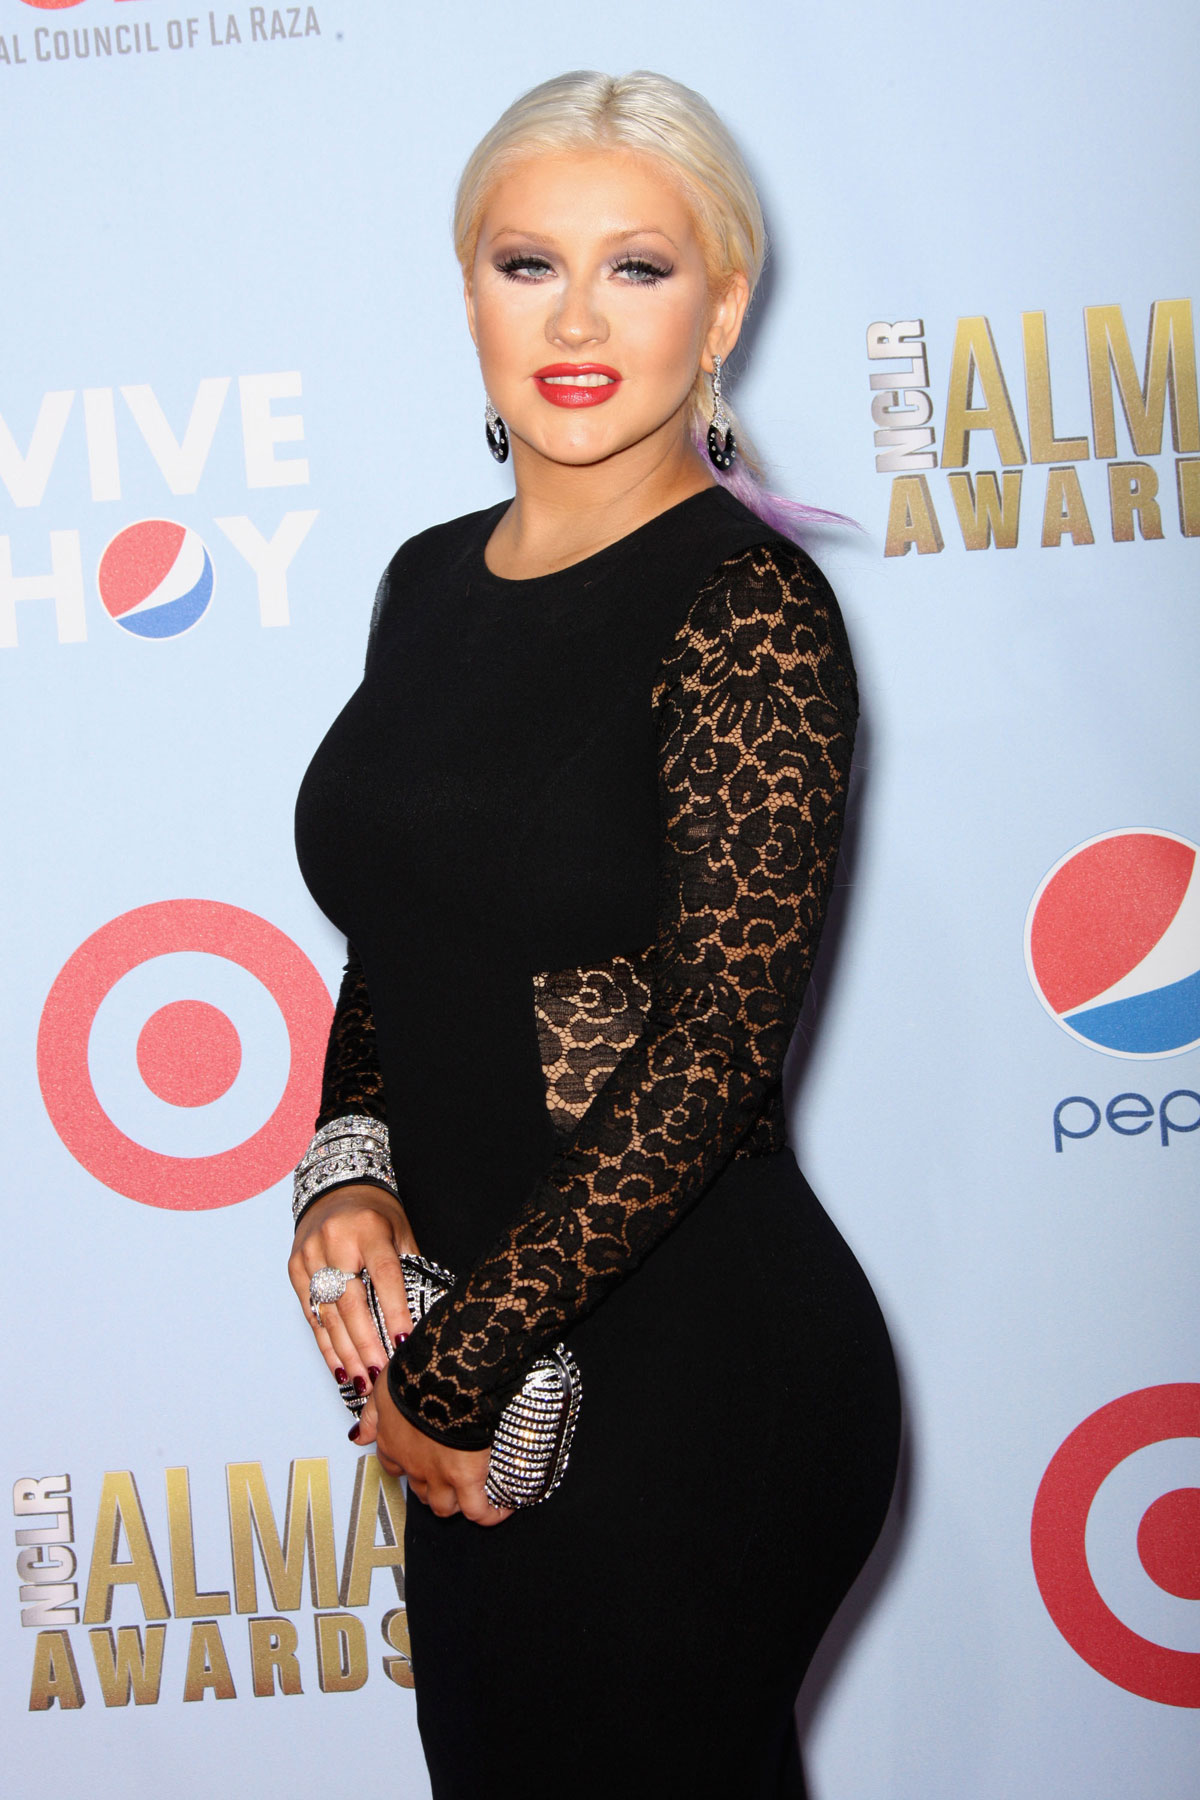 CHRISTINA-AGUILERA-at-2012-NCLR-ALMA-Awards-in-Pasadena-5.jpg